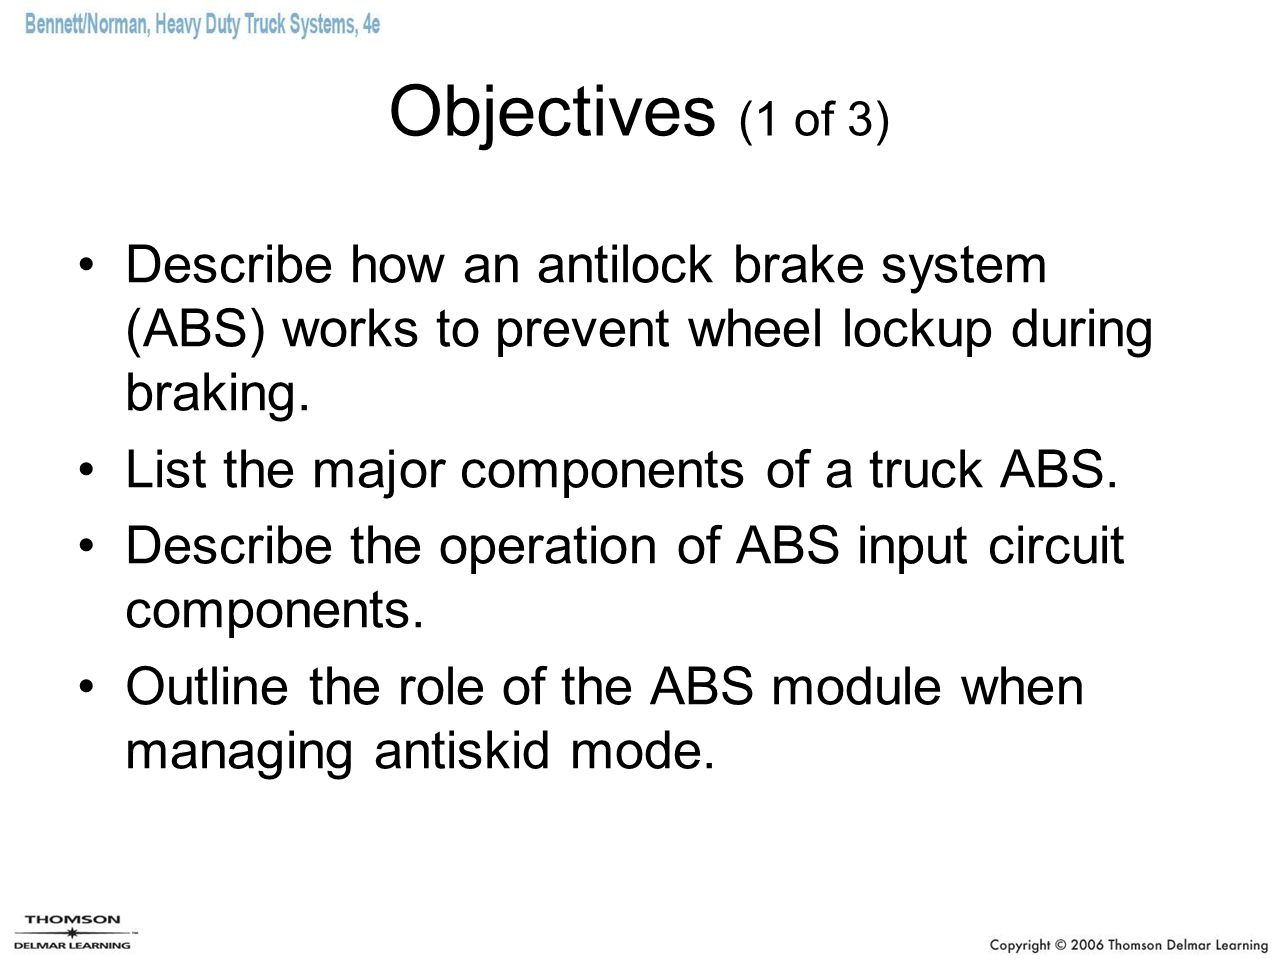 Objectives (1 of 3) Describe how an antilock brake system (ABS) works to prevent wheel lockup during braking. List the major components of a truck ABS